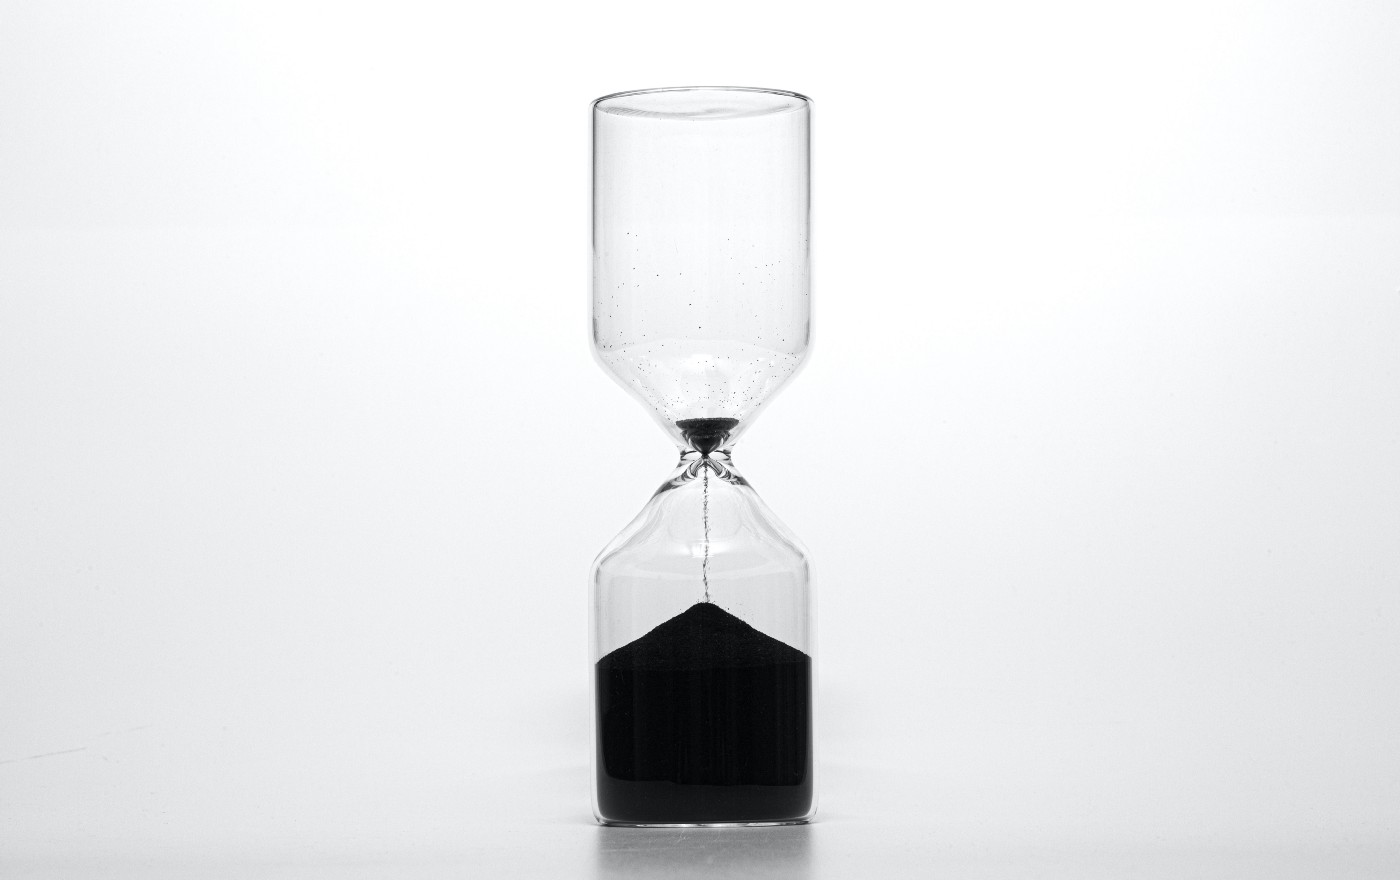 A hourglass is shown with most of the sand on the bottom. Only a little bit of sand is at the top with it flowing into the bottom.